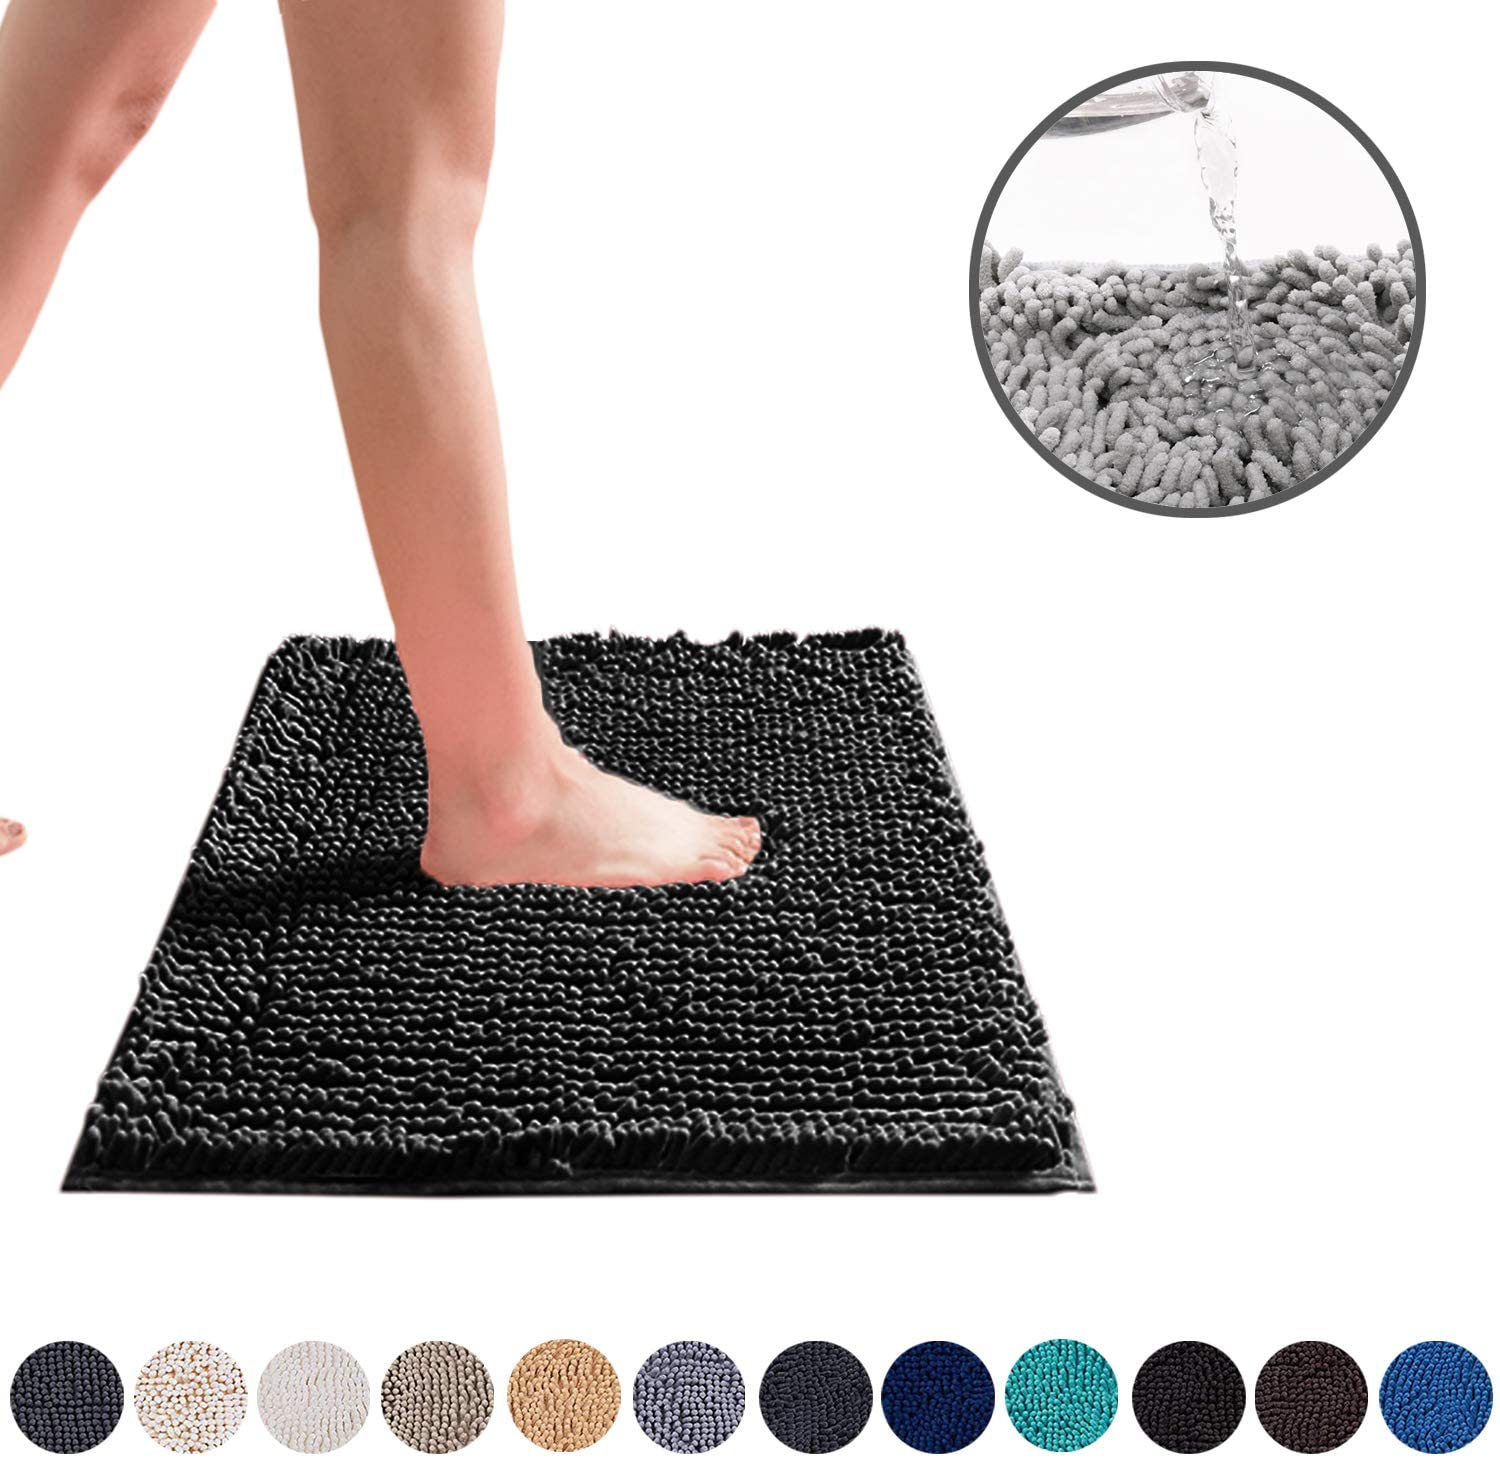 DEARTOWN Non-Slip Shaggy Bathroom Rug (Black,24X39 Inches),Soft Microfibers Chenille Bath Mat with Water Absorbent, Machine Washable